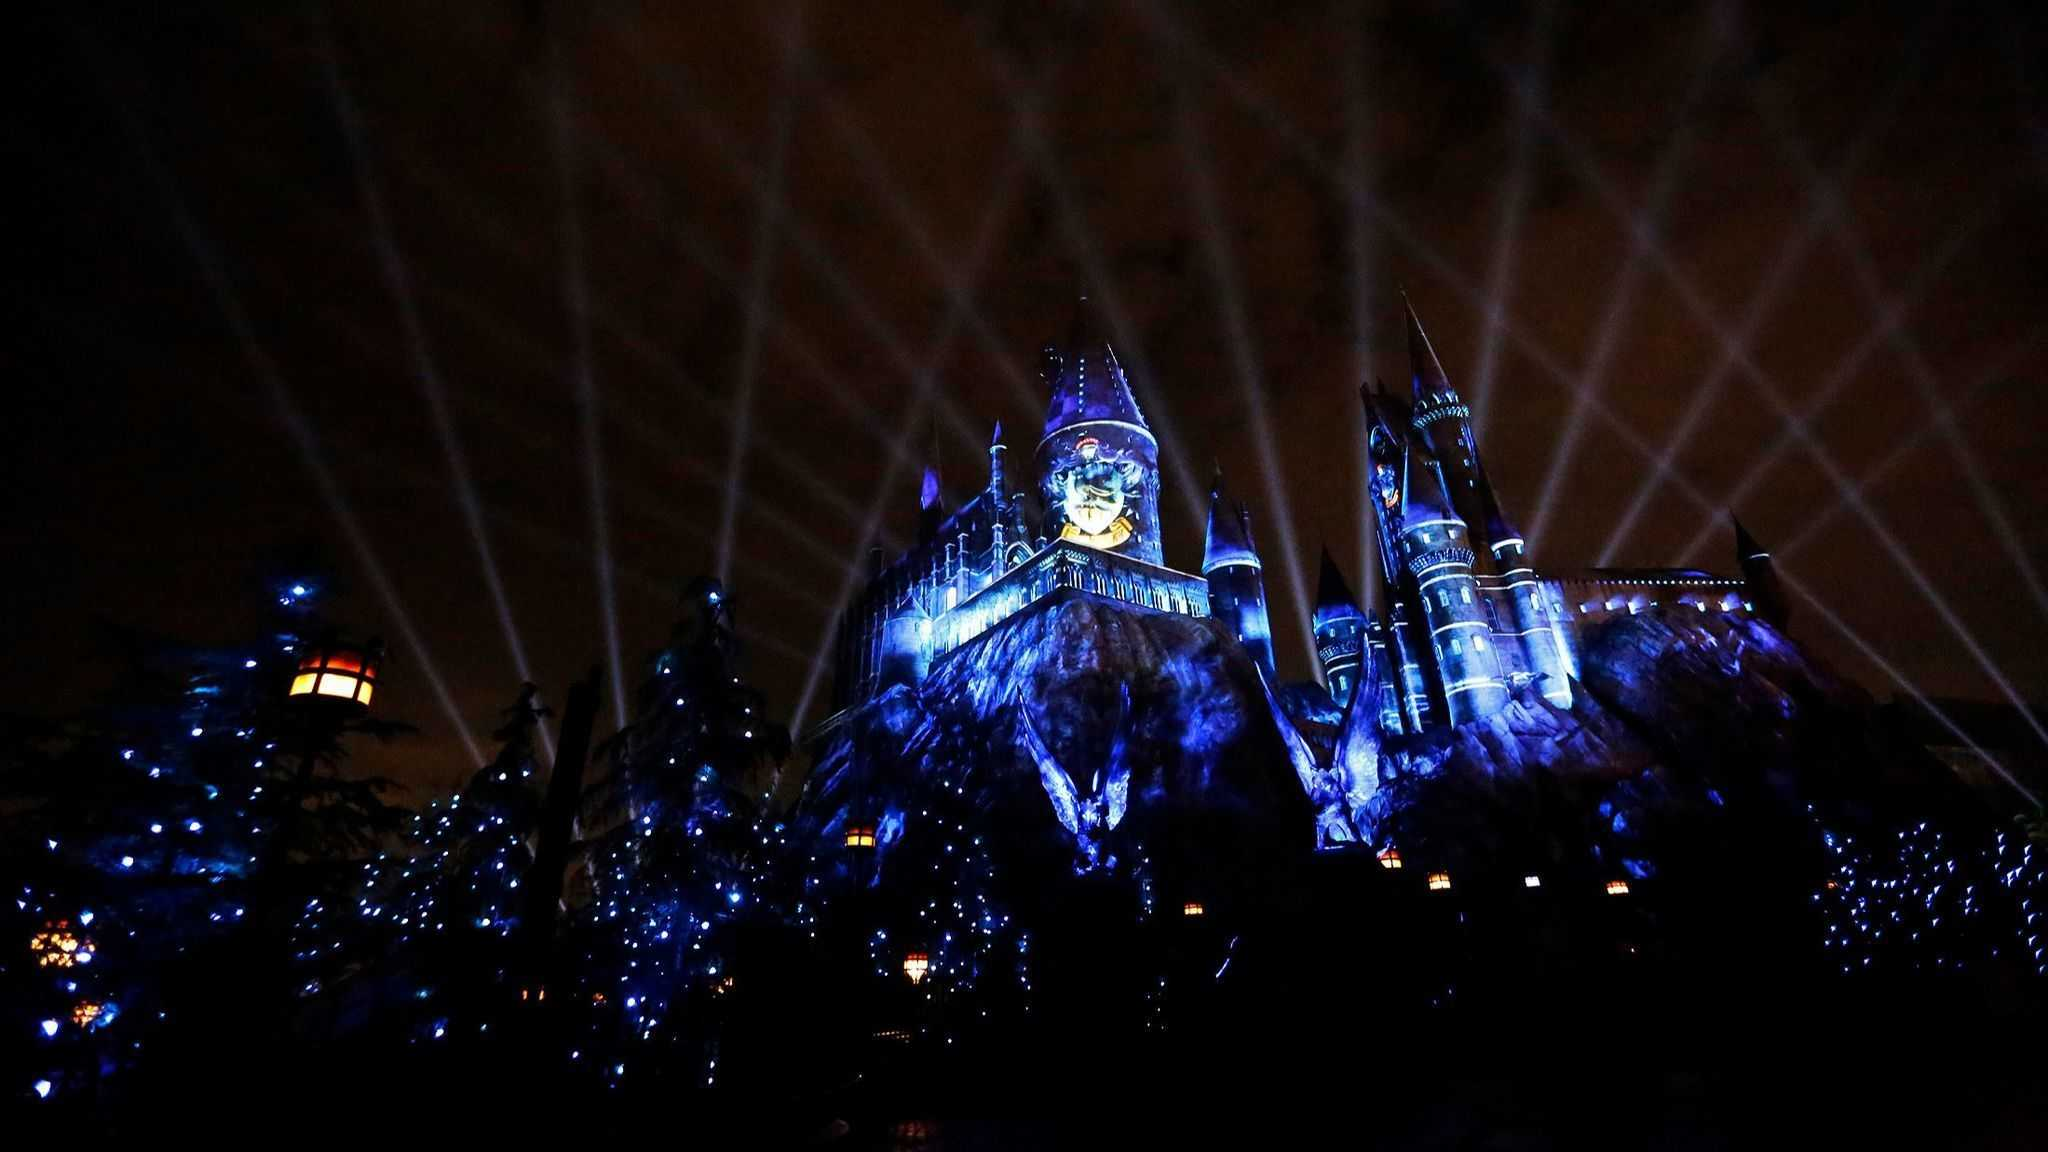 Hogwarts Castle Nighttime Projection Show Debuting This Summer